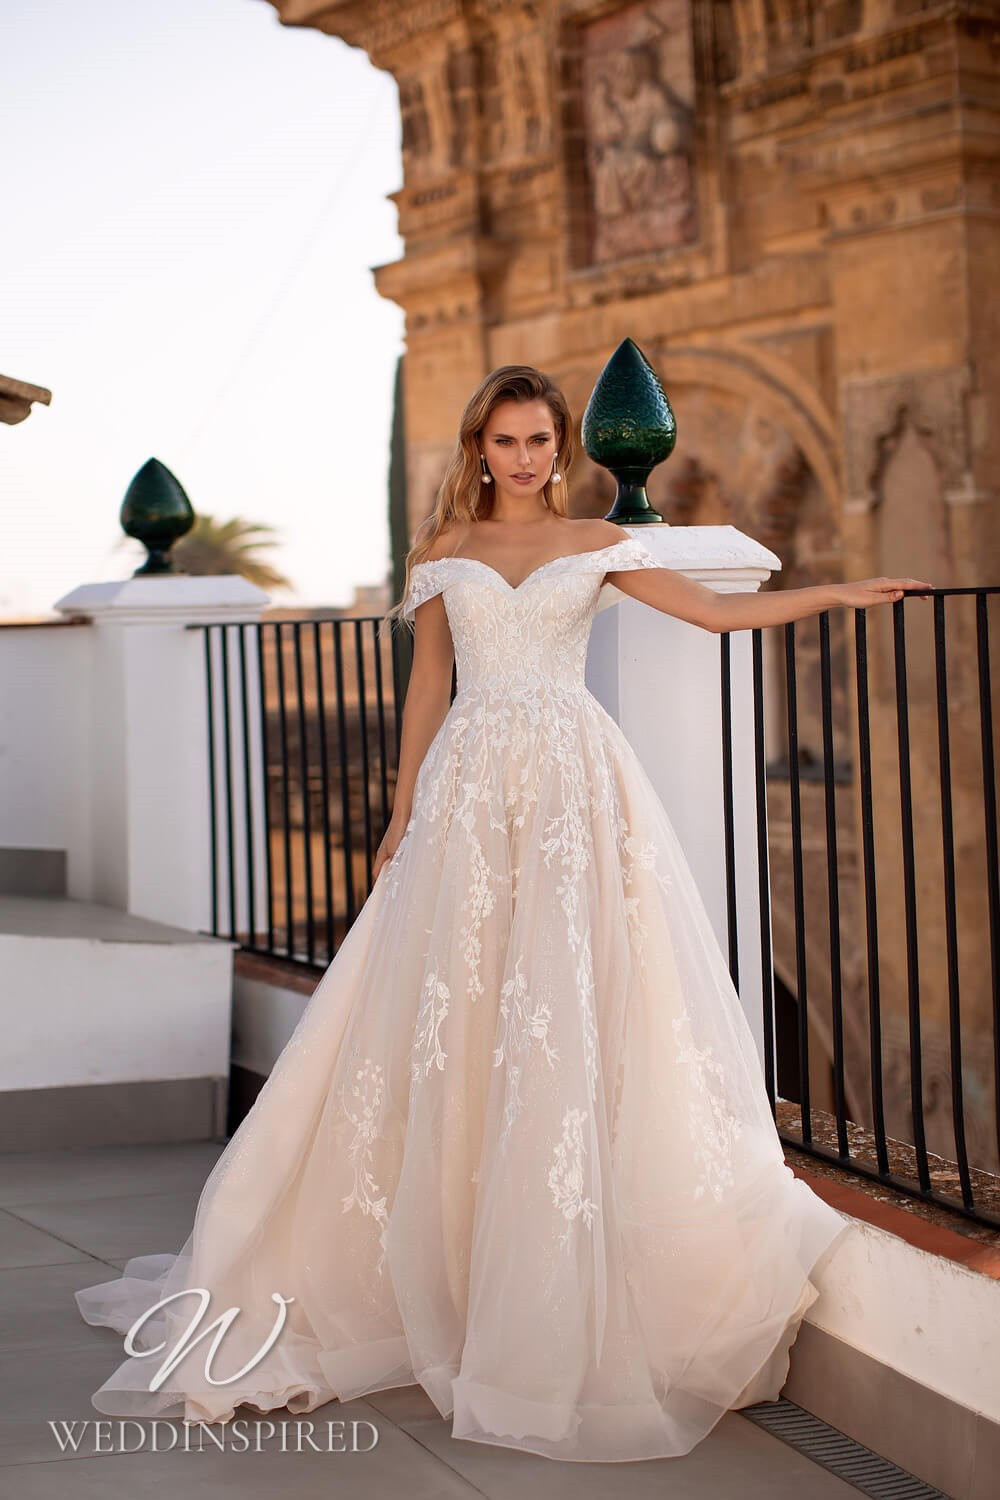 An Essential by Lussano 2021 off the shoulder lace and tulle A-line wedding dress